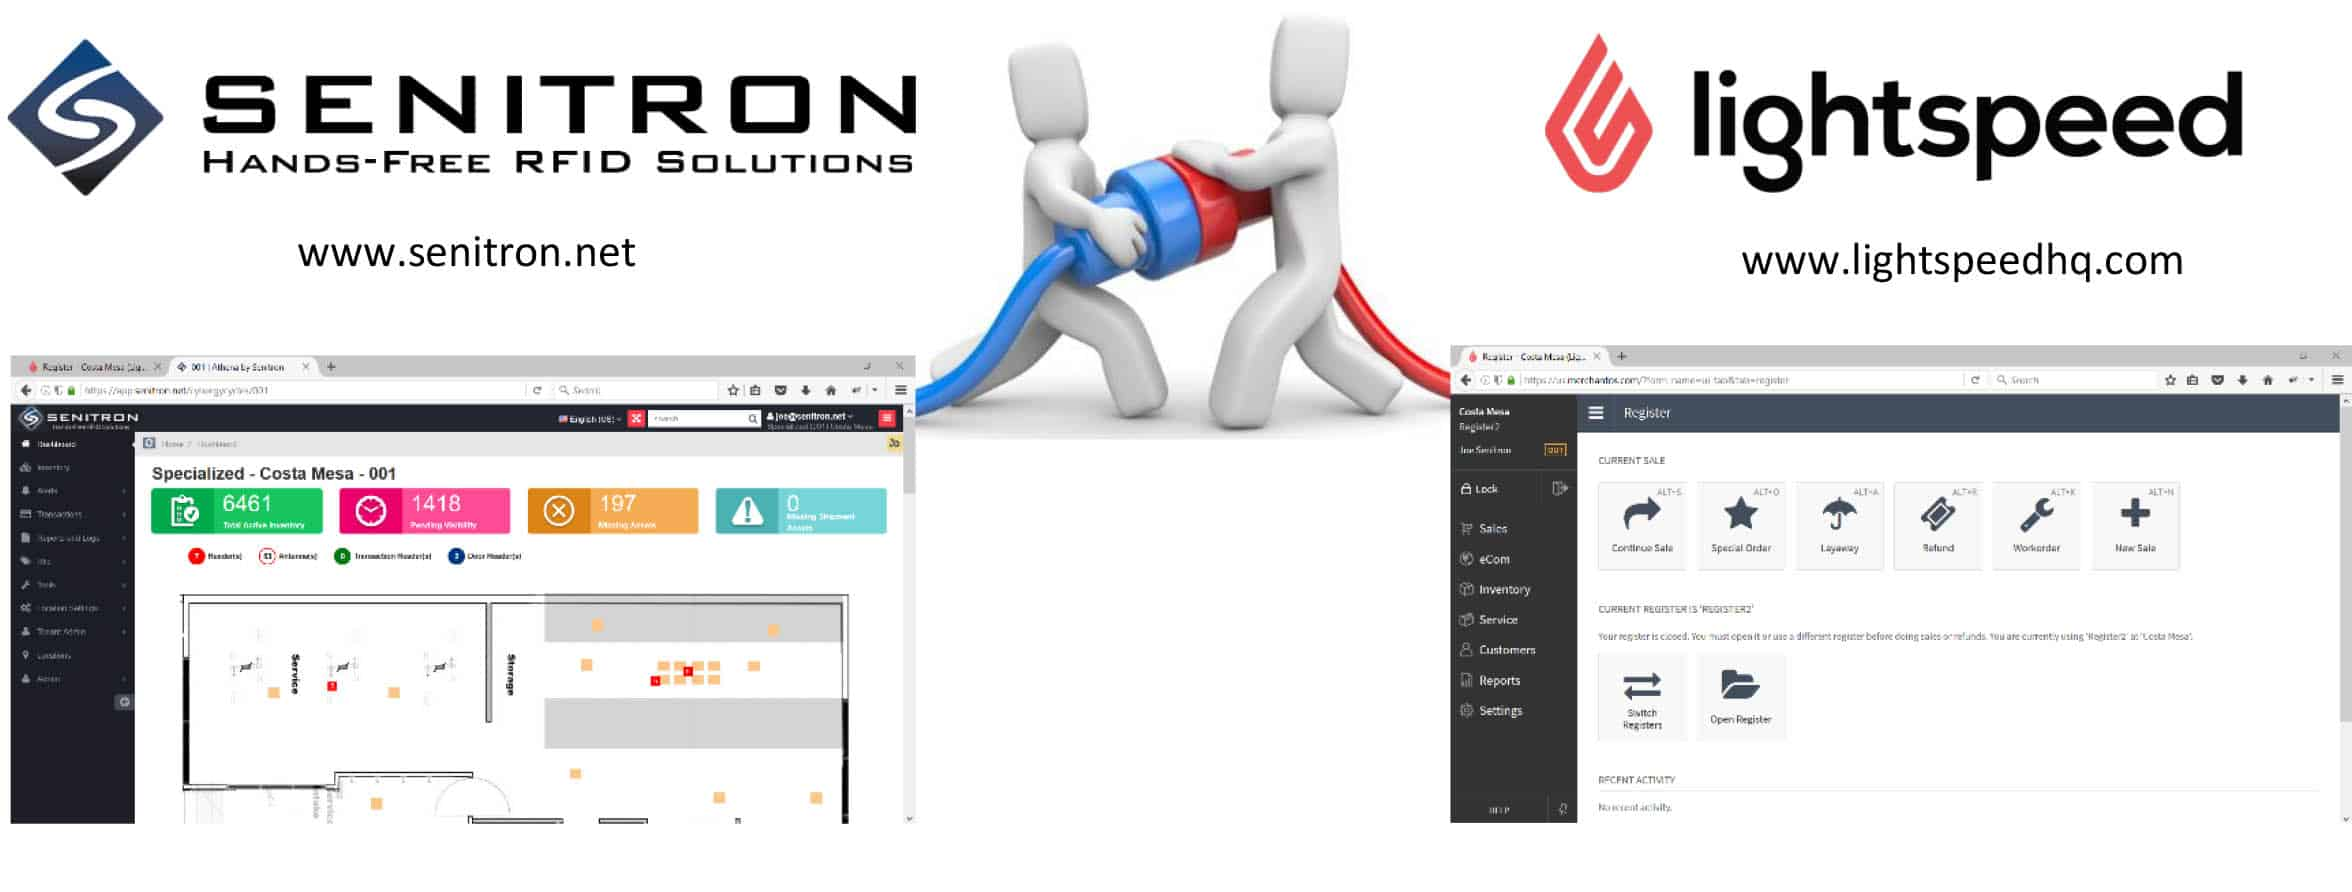 Senitron Announces Full Integration Capabilities With Lightspeed POS